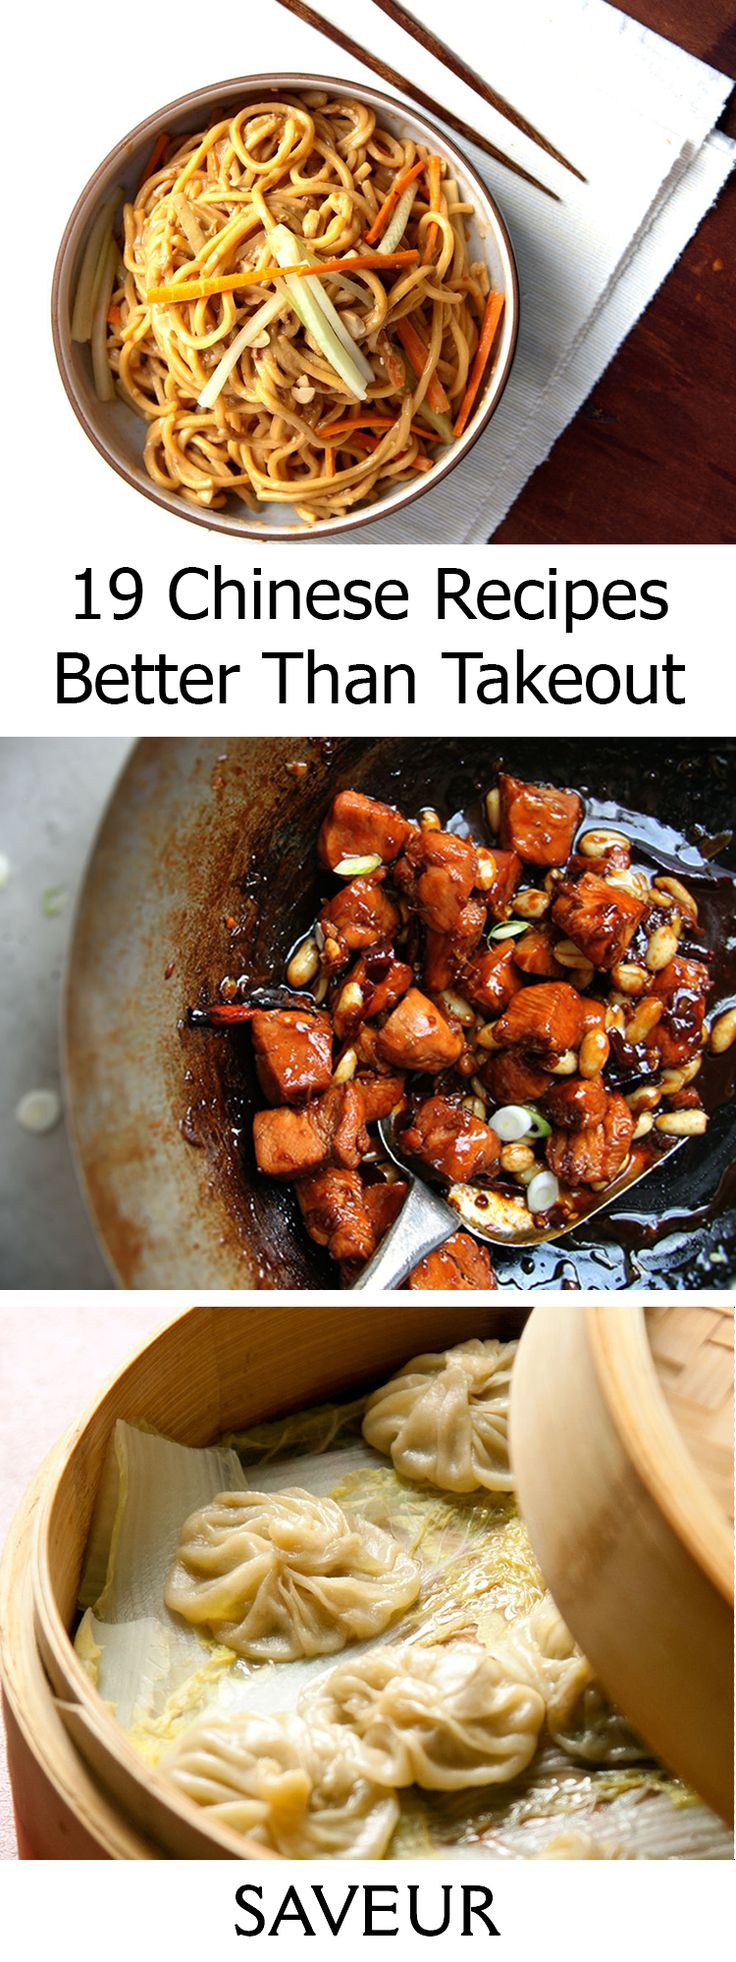 123 best essential china images on pinterest asian food recipes 25 chinese recipes that are better than takeout forumfinder Images